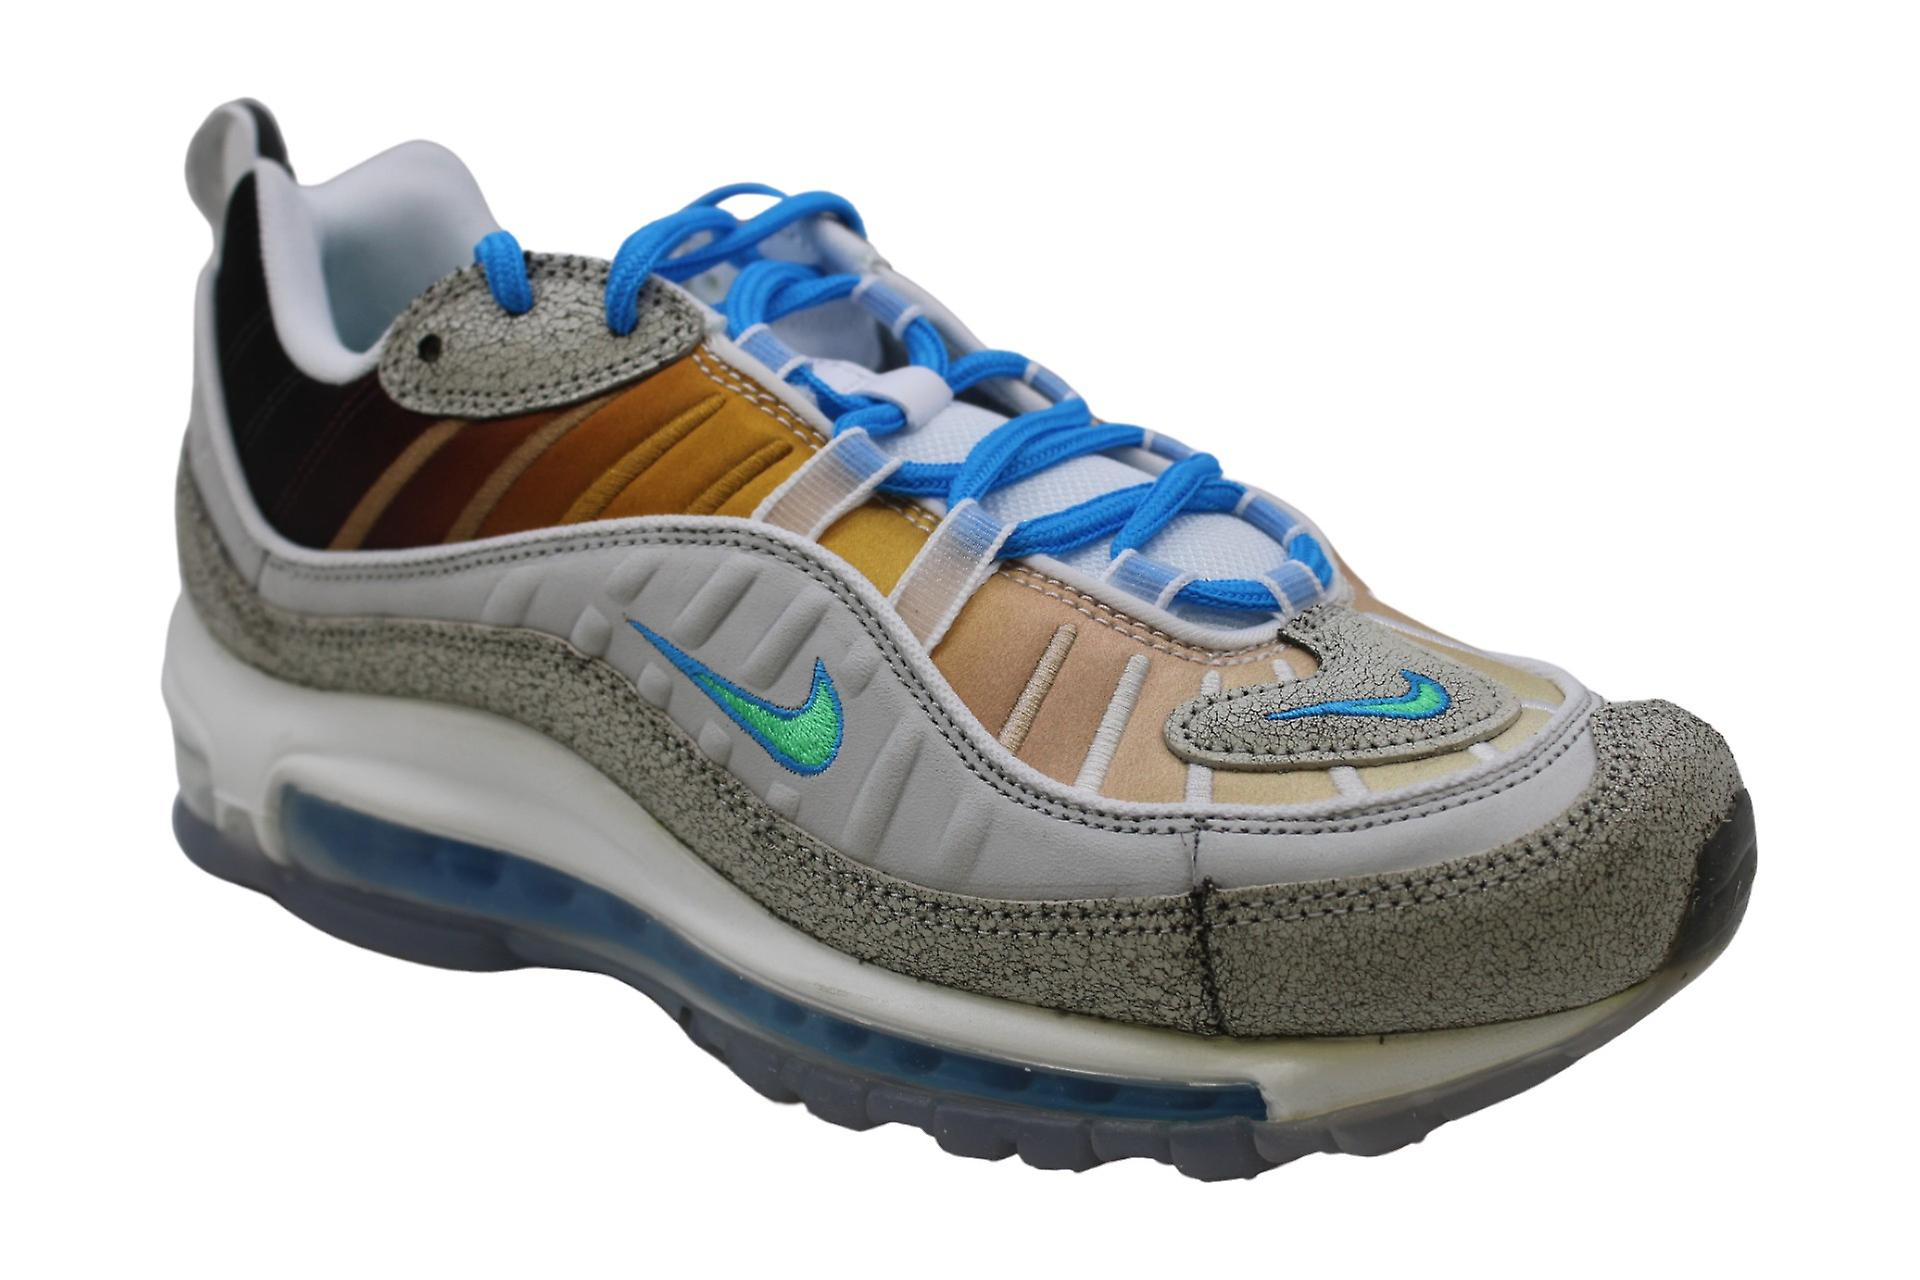 Nike Men's Shoes Air Max 98 OA GS Low Top Lace Up Running Sneaker